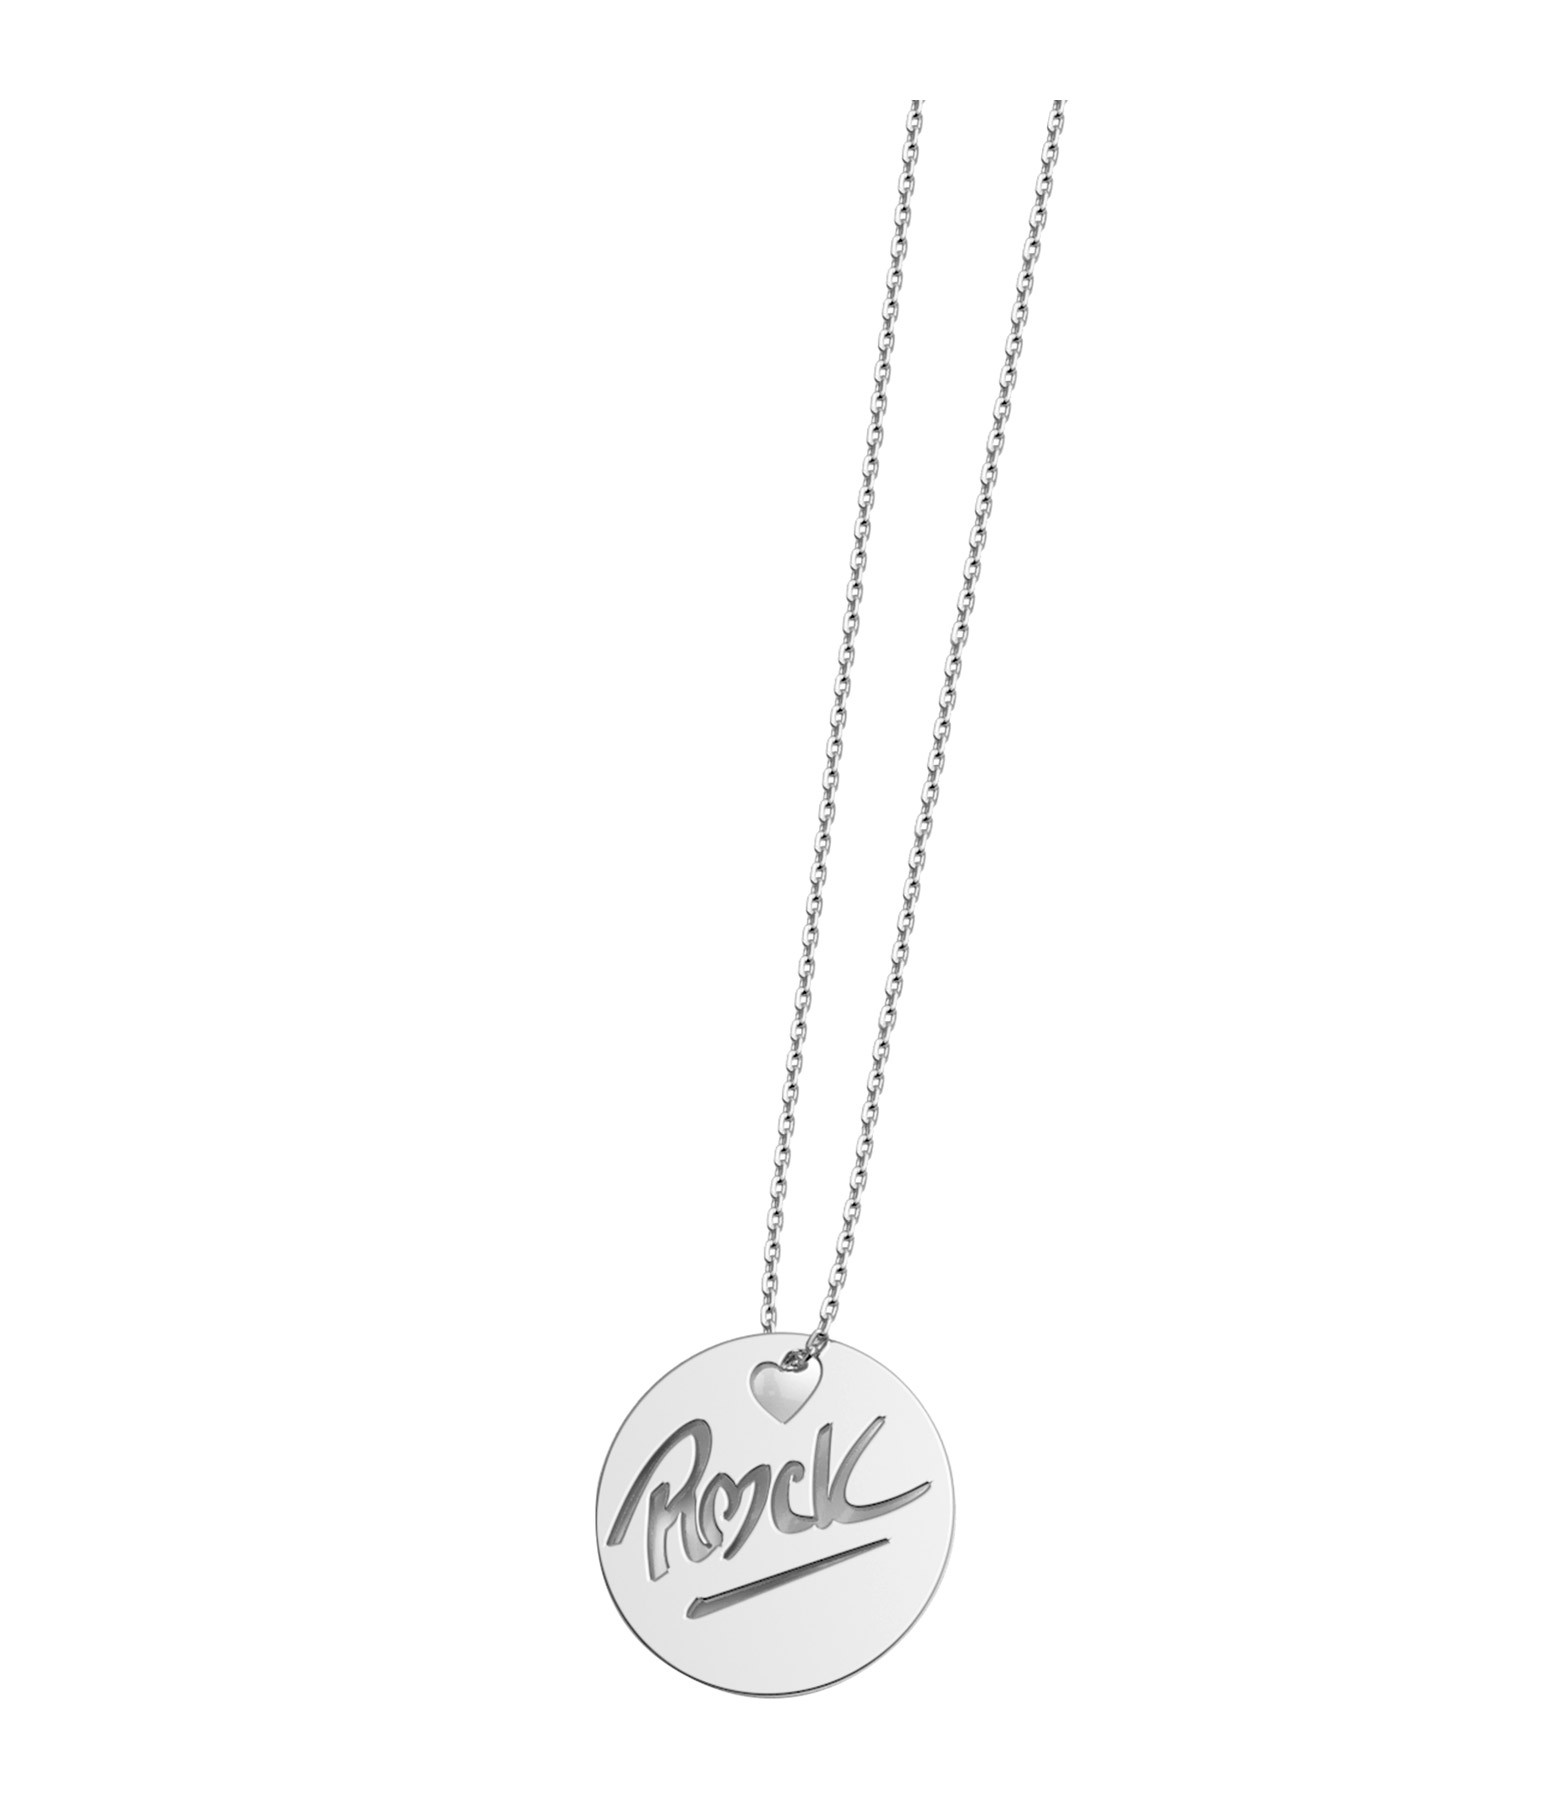 NAVA JOAILLERIE - Collier Rond Rock S Or Blanc